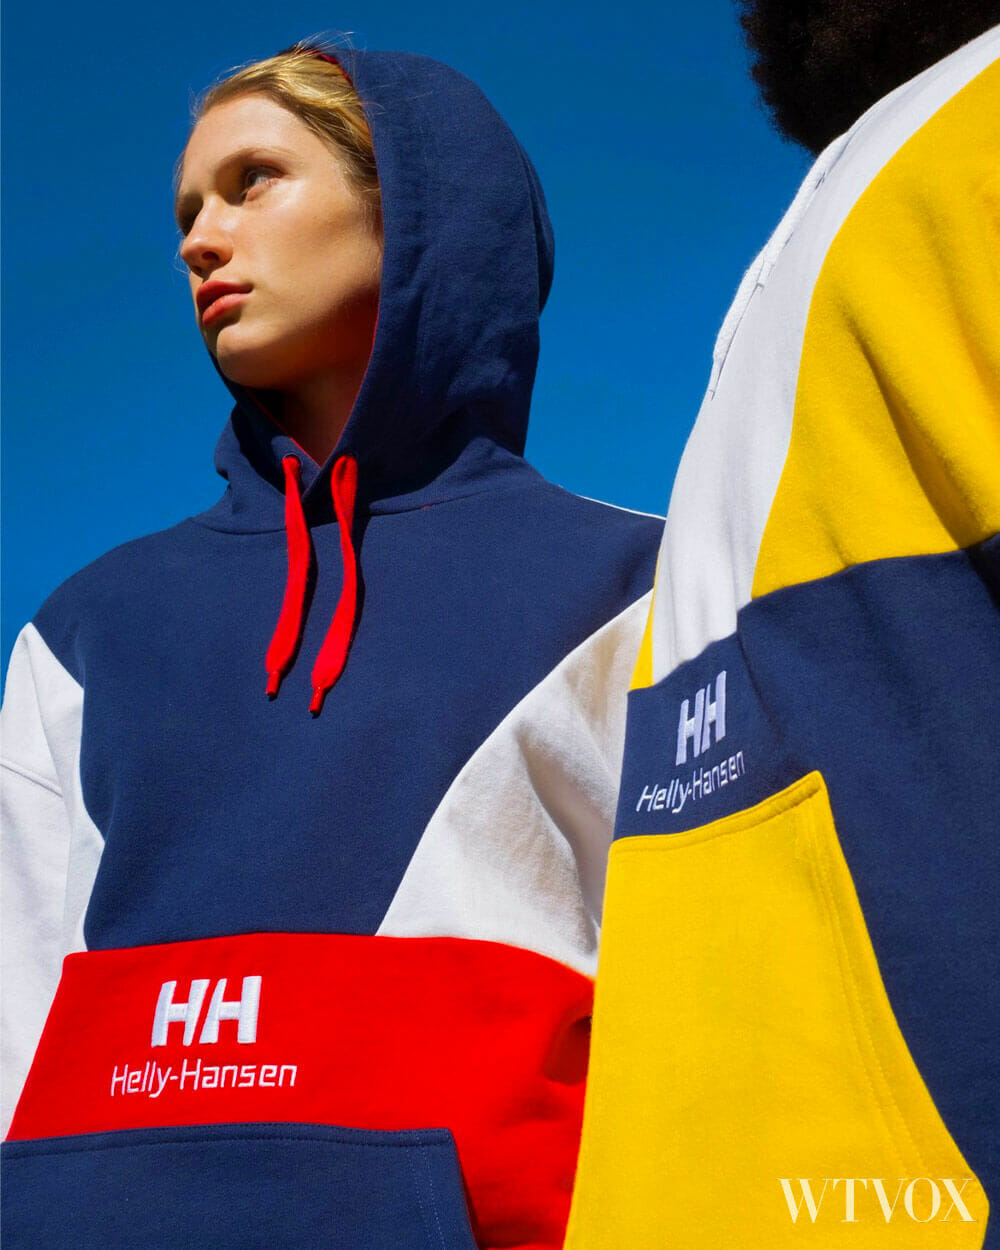 Helly Hensen Outdoor clothing brand